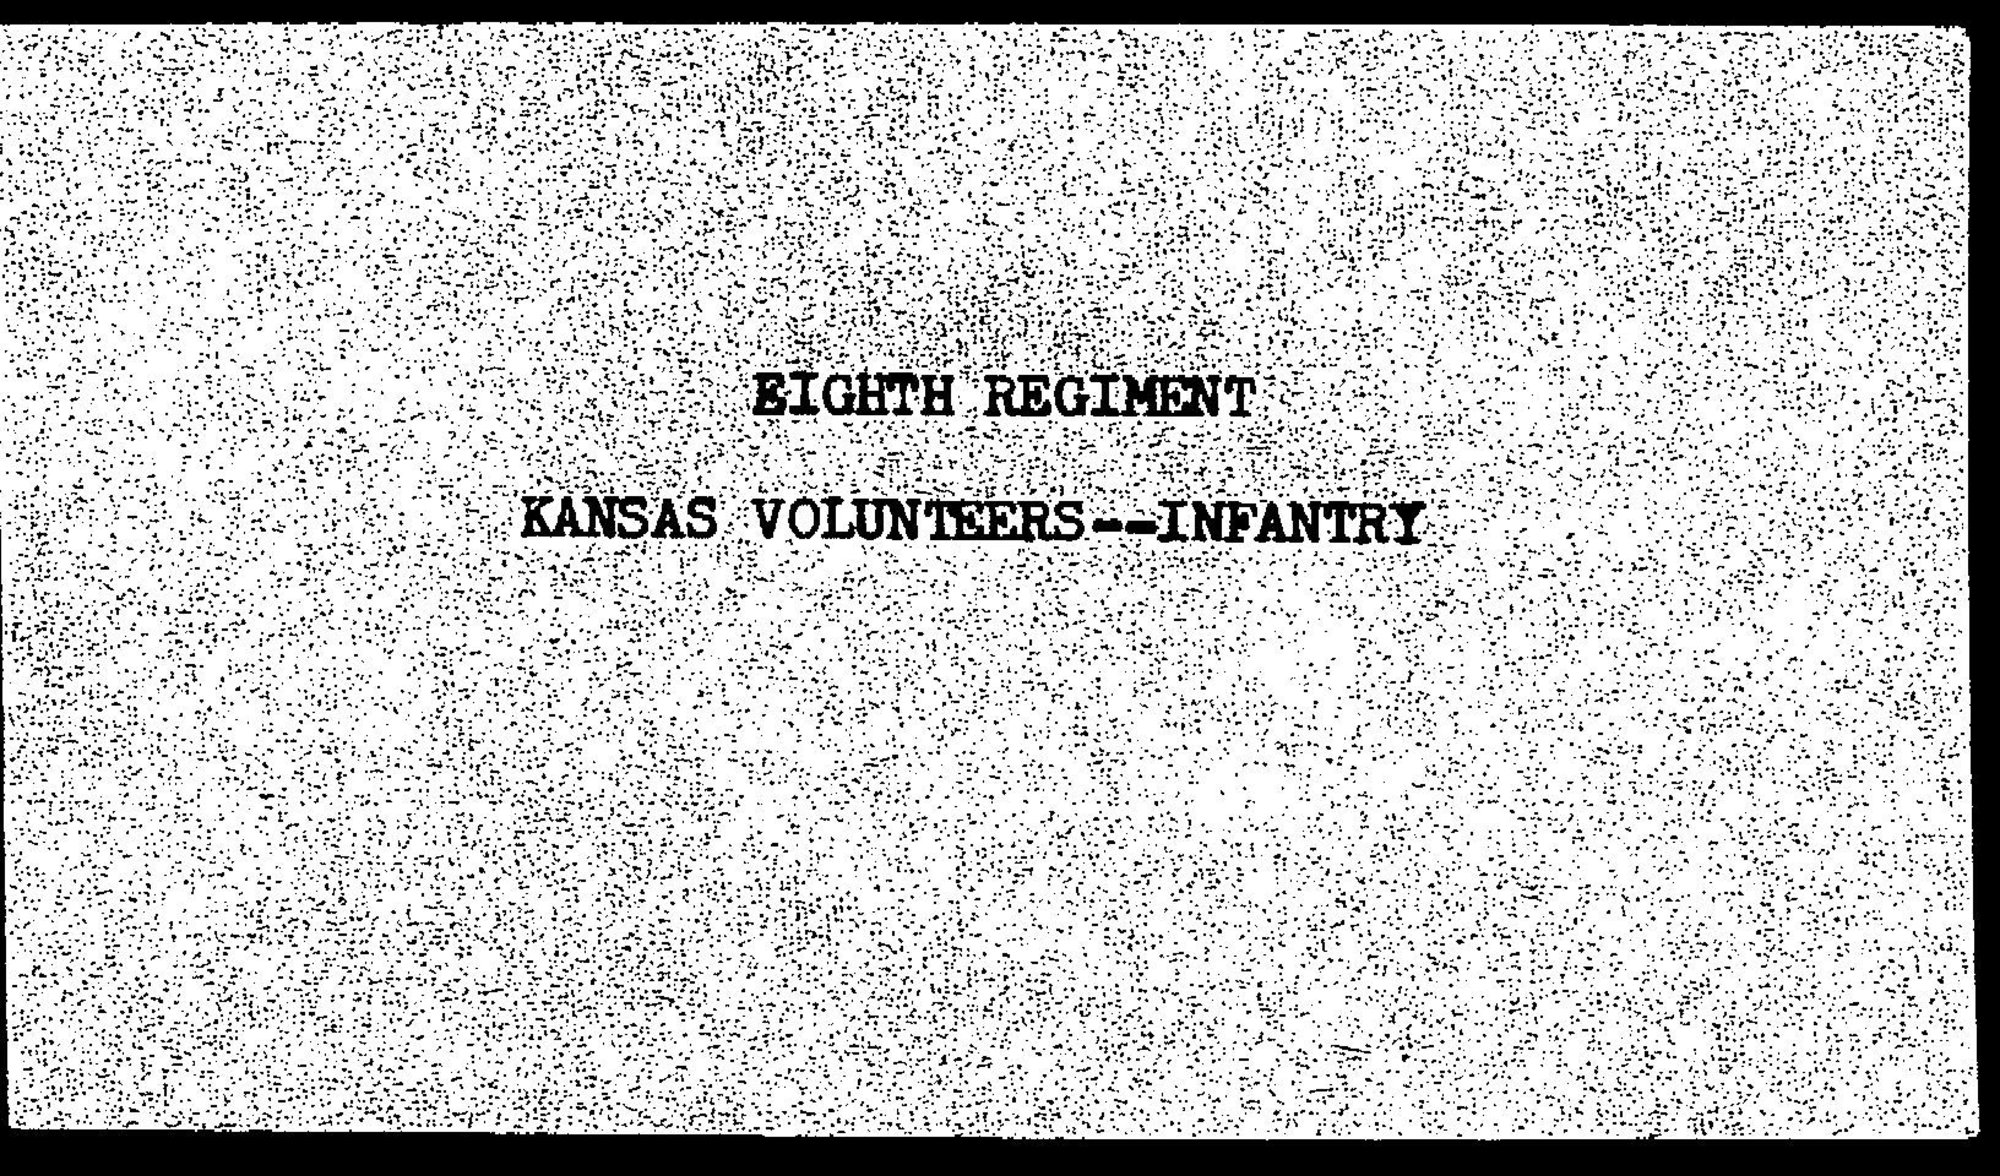 Descriptive roll, Eighth Regiment, Infantry, Kansas Civil War Volunteers, volume 7 - 1